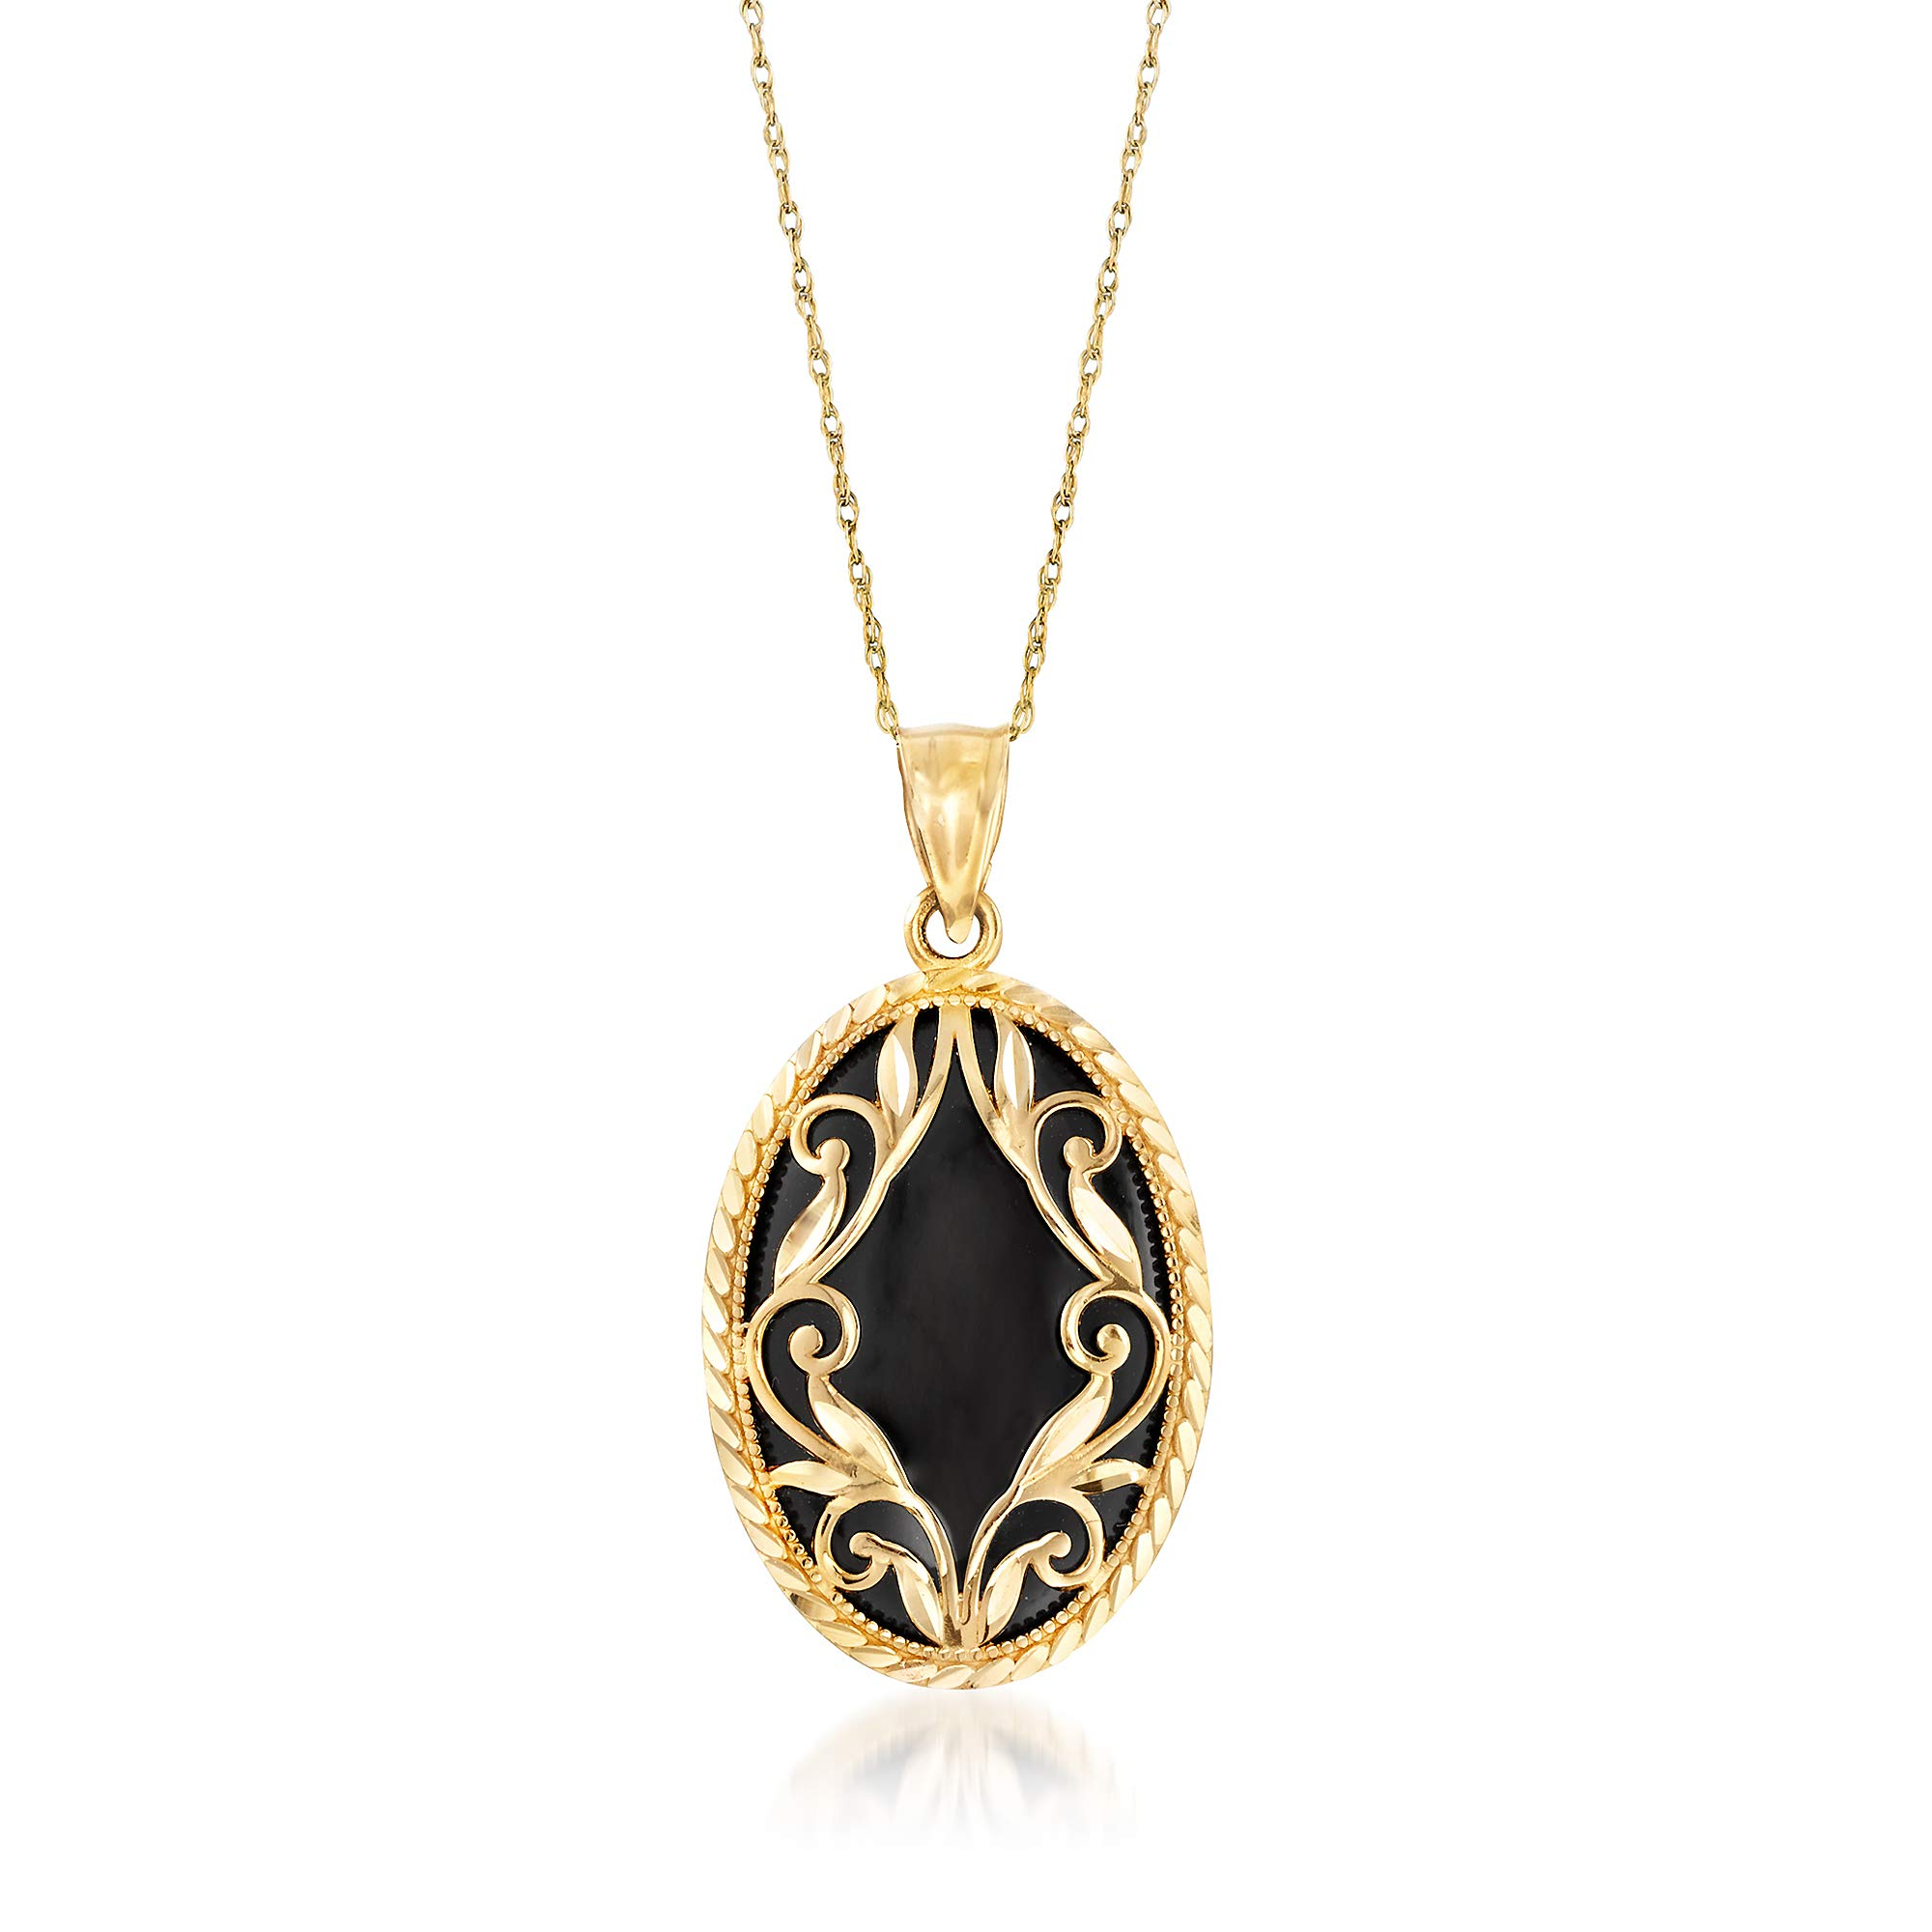 Ross-Simons Oval Black Onyx and 14kt Yellow Gold Pendant Necklace